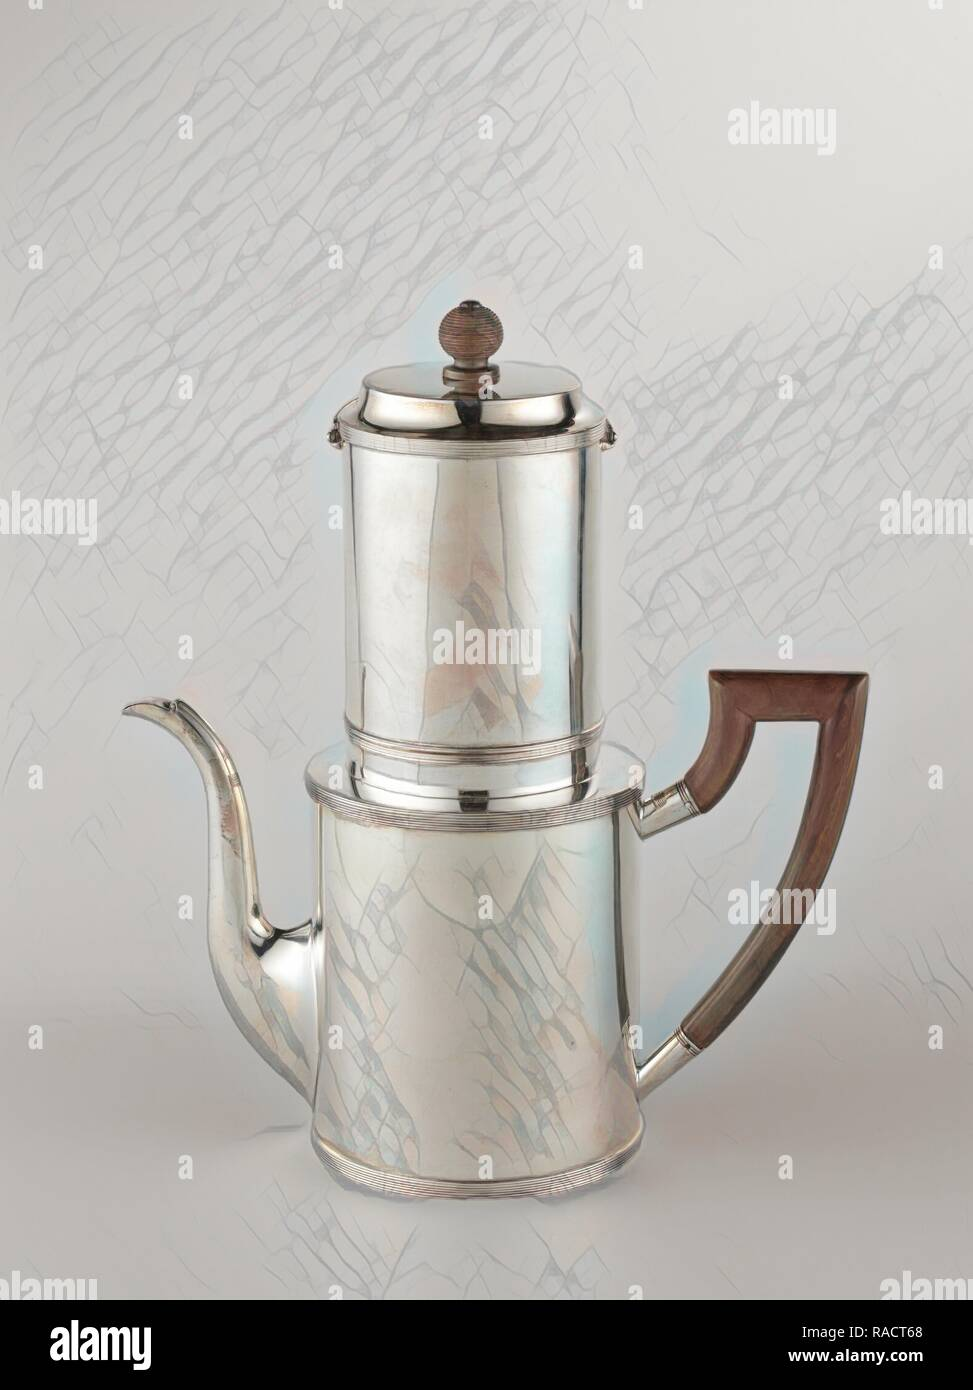 Drip filter coffee pot, Fa. Diemont, Jacobus Carrenhoff, 181. Reimagined by Gibon. Classic art with a modern twist reimagined - Stock Image